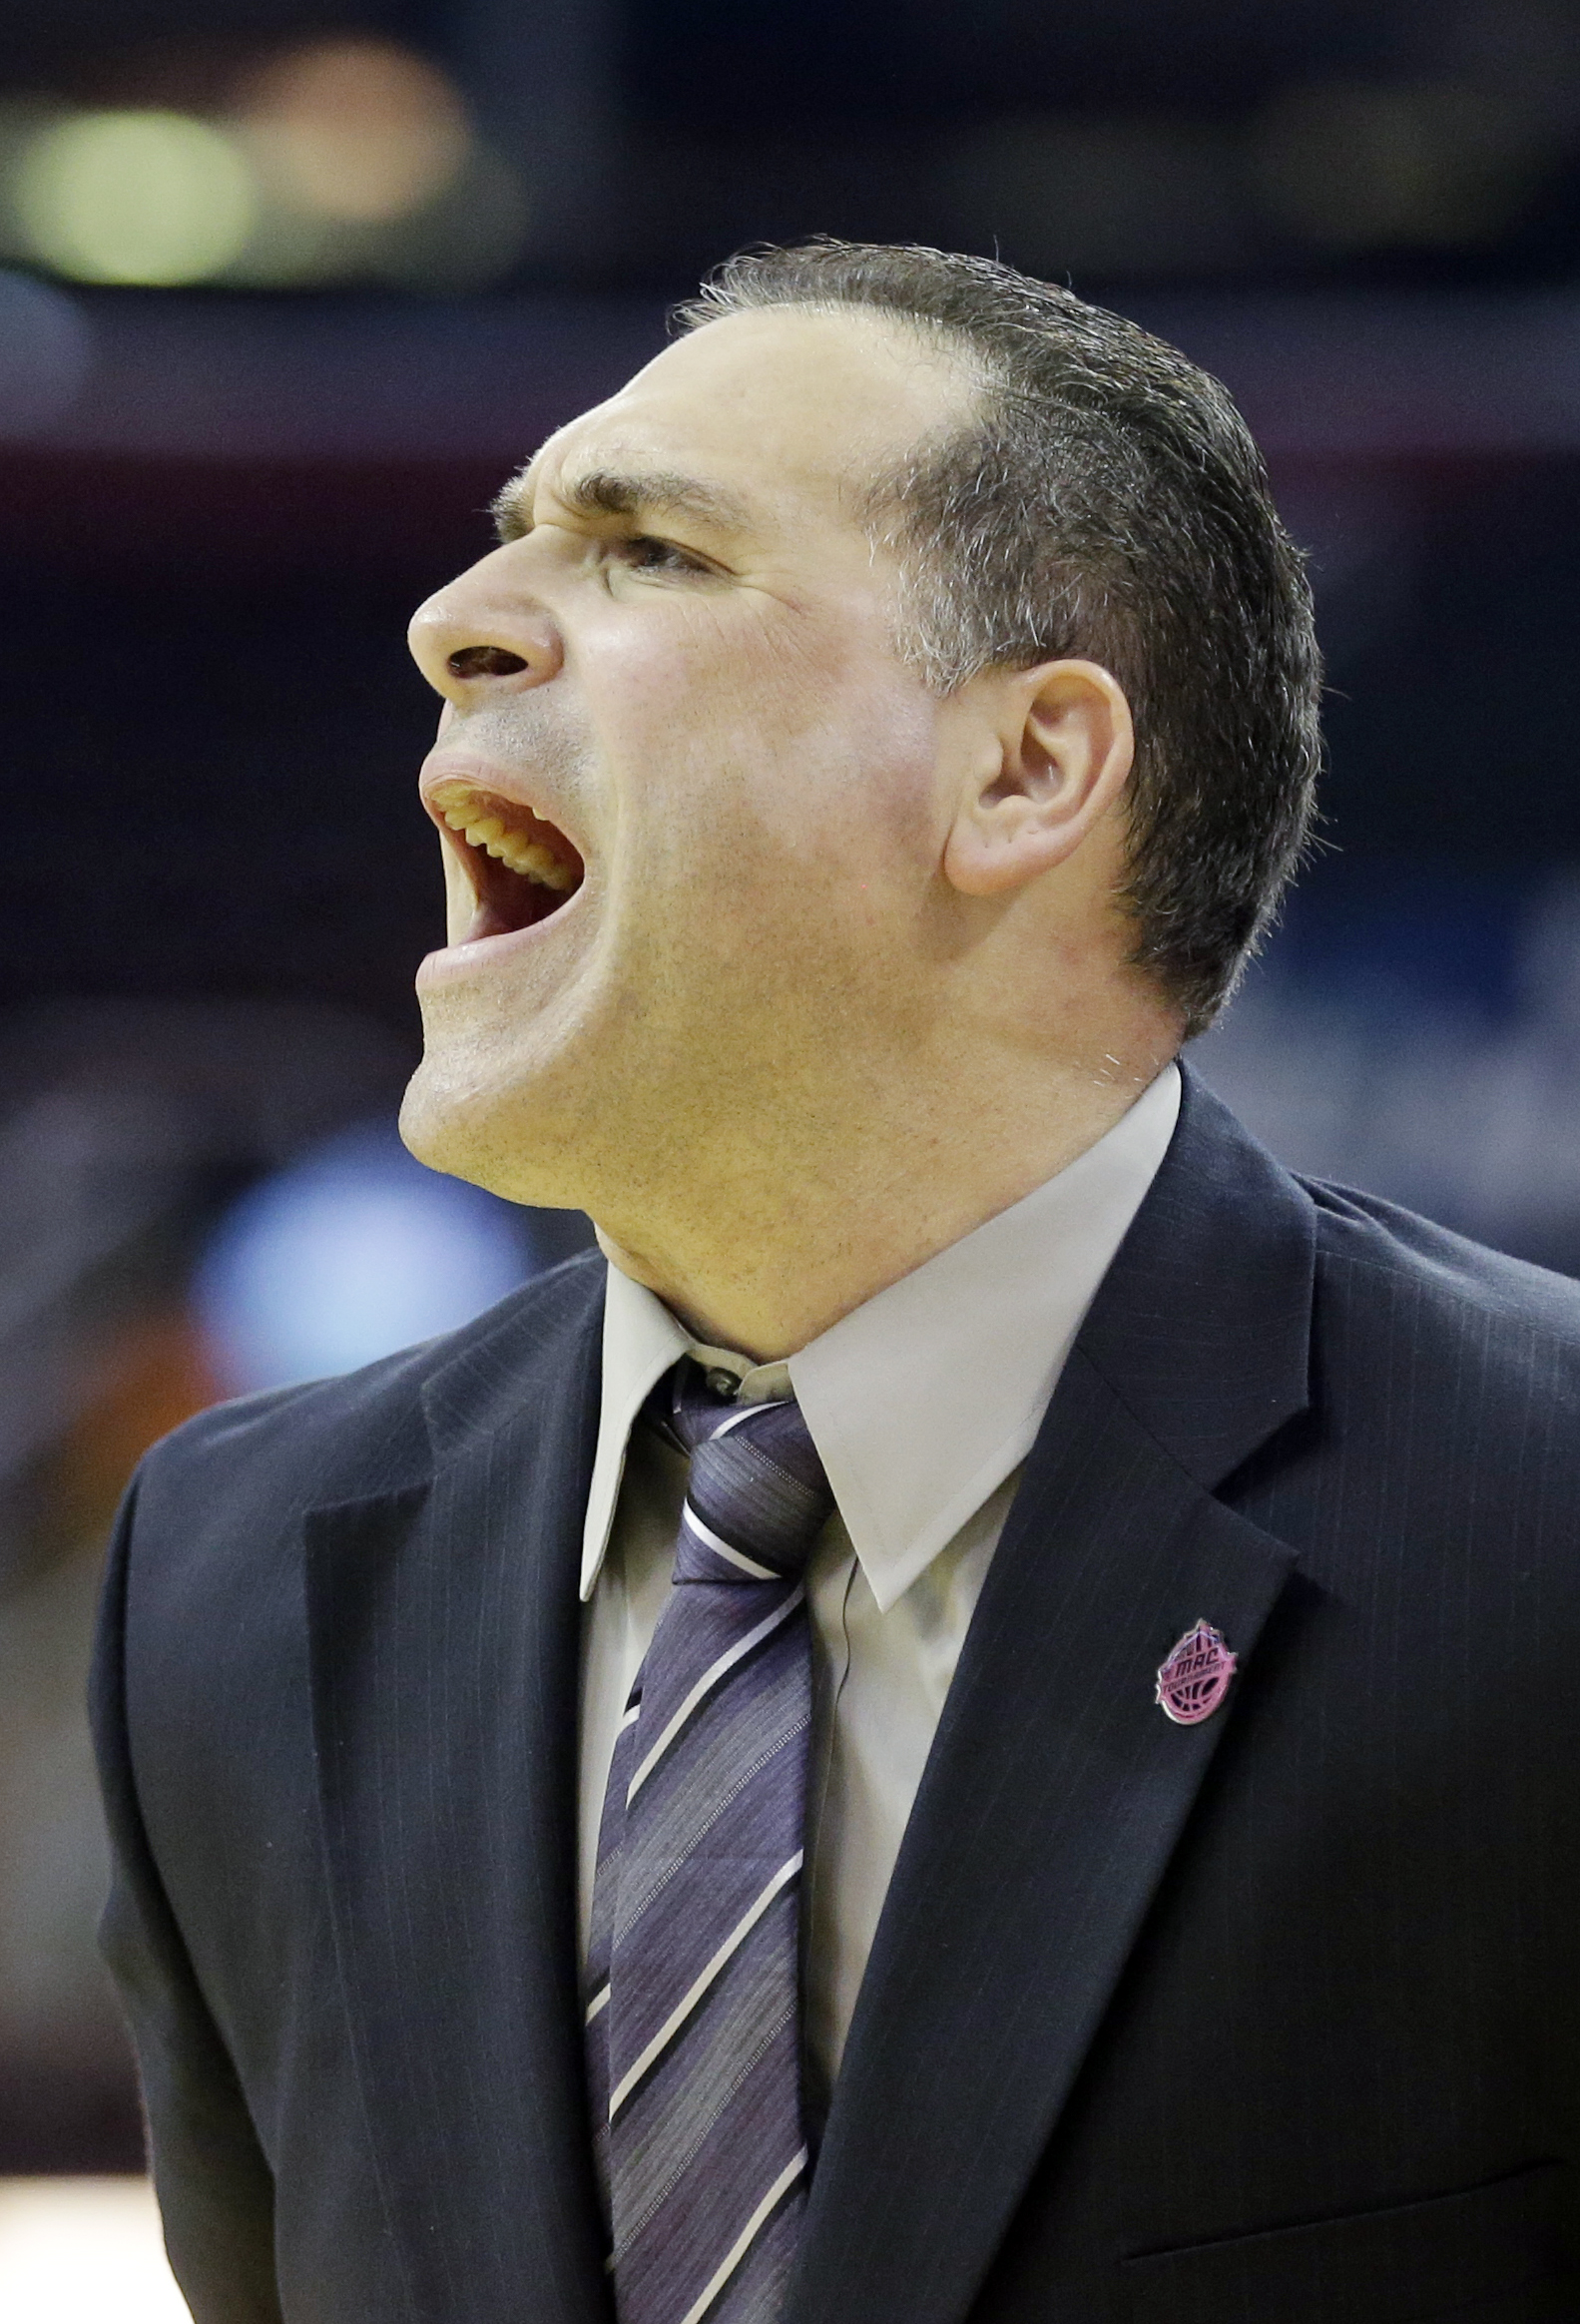 Eastern Michigan head coach Tory Verdi yells at his team during the first half of an NCAA college basketball game against Ohio in the championship of the Mid-American Conference tournament Saturday, March 14, 2015, in Cleveland. (AP Photo/Mark Duncan)